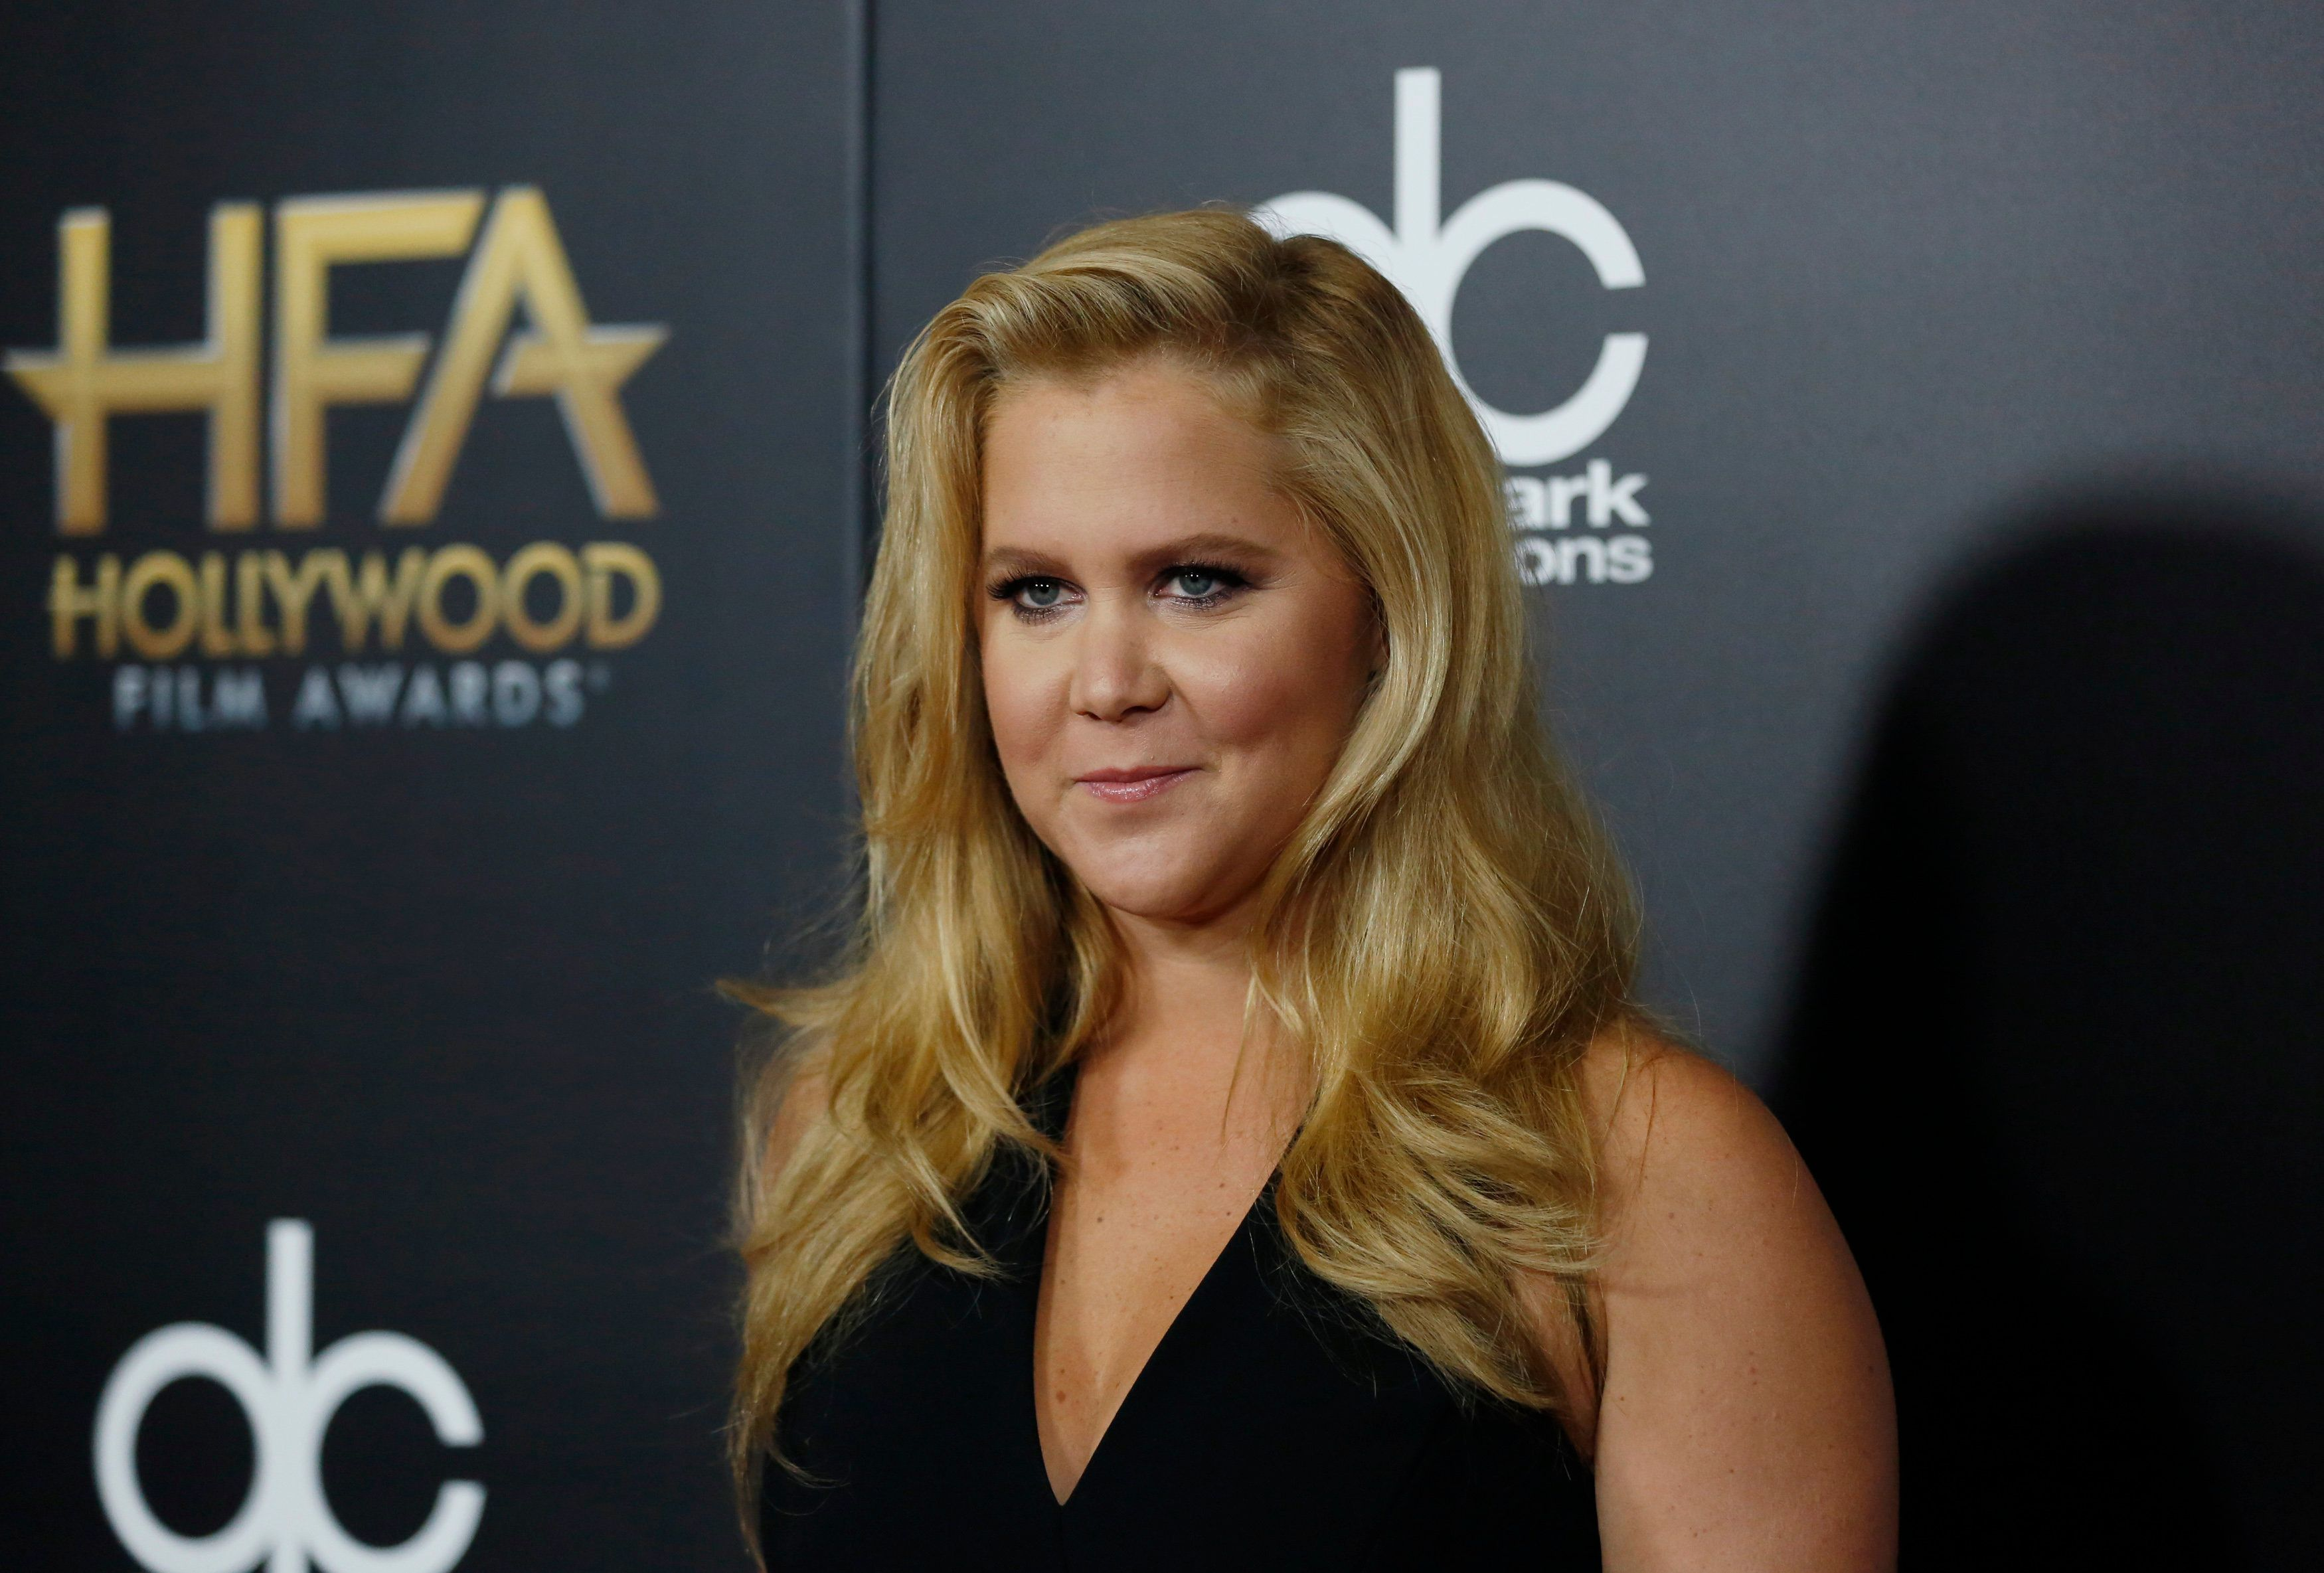 Actress Amy Schumer arrives at the Hollywood Film Awards in Beverly Hills, California November 1, 2015.  REUTERS/Mario Anzuoni